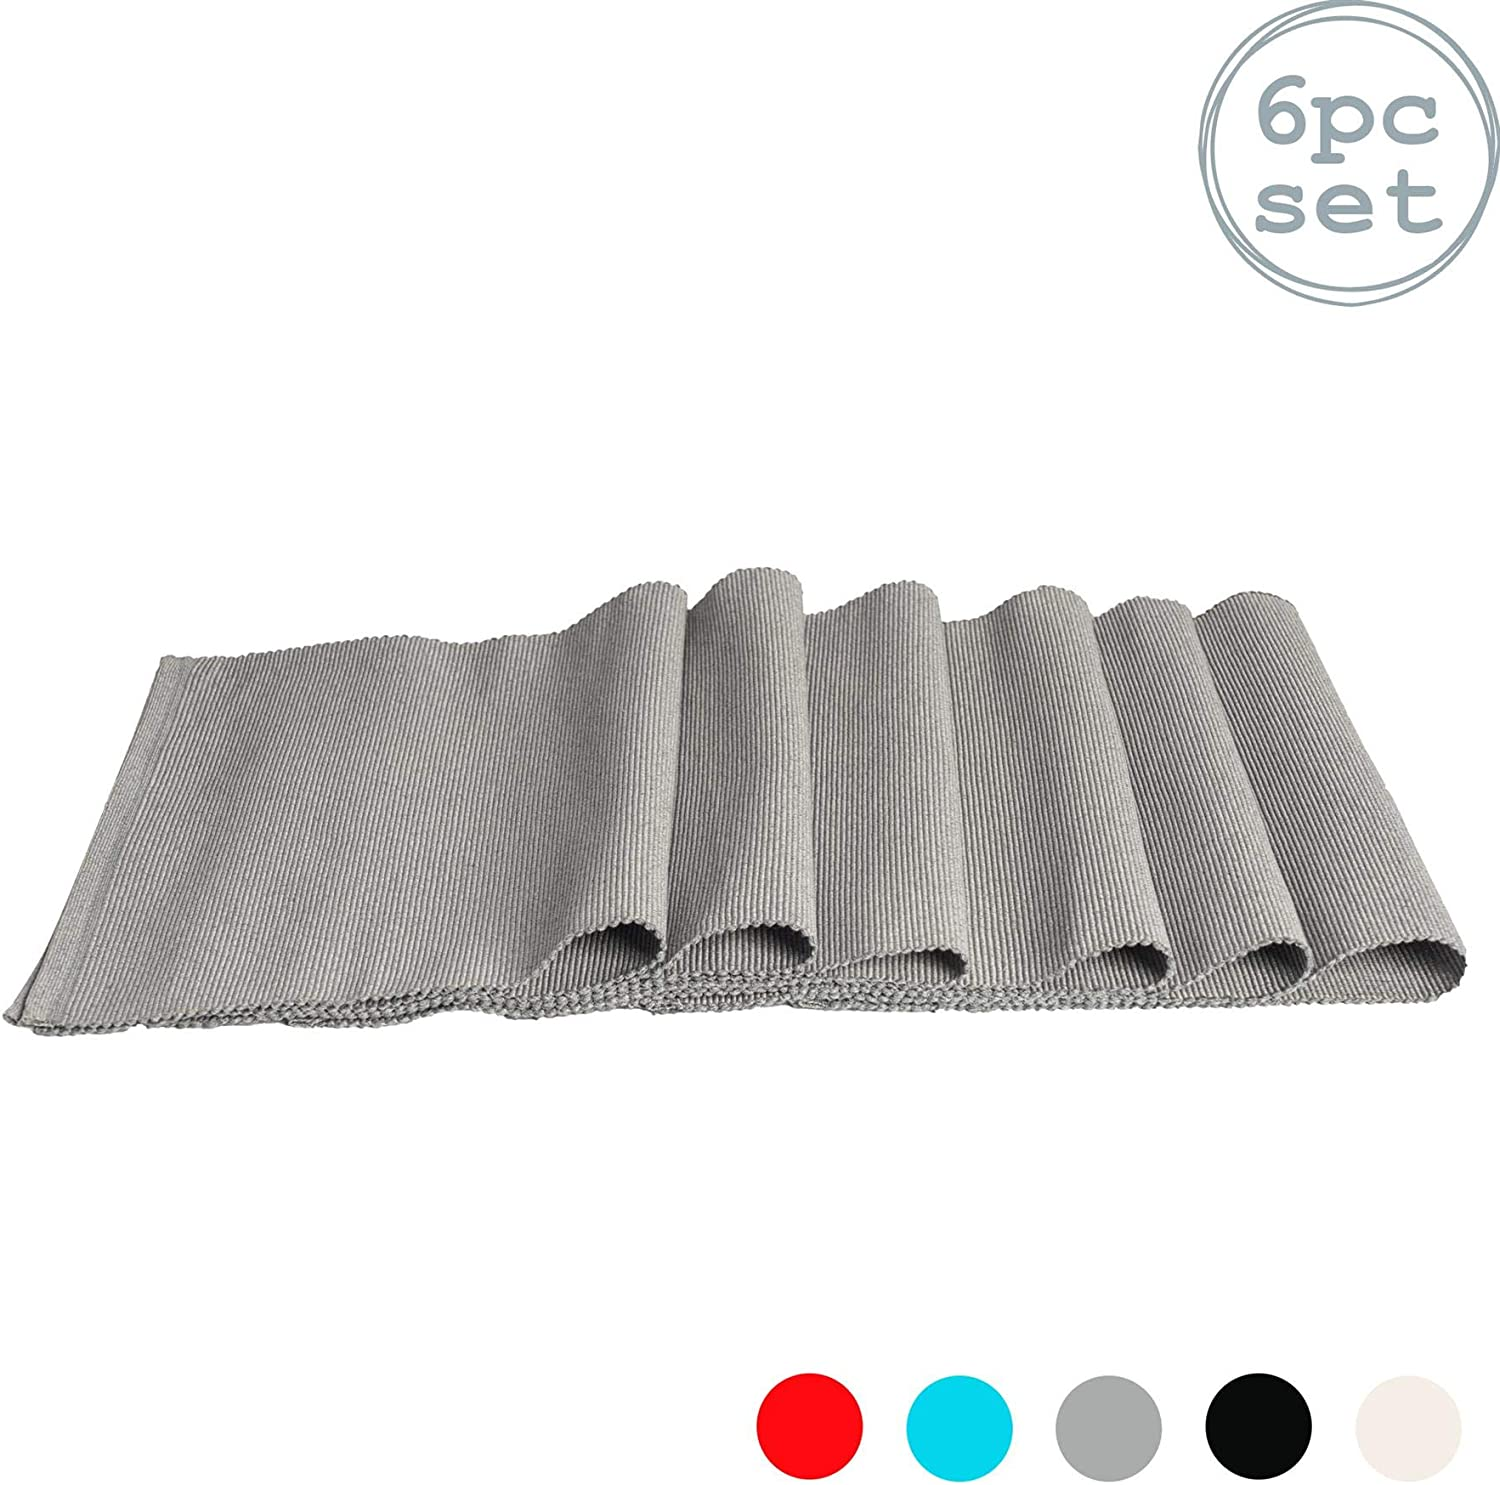 Grey 480 x 330mm Nicola Spring Ribbed Rectangular Cotton Dining Table Placemats Pack of 6